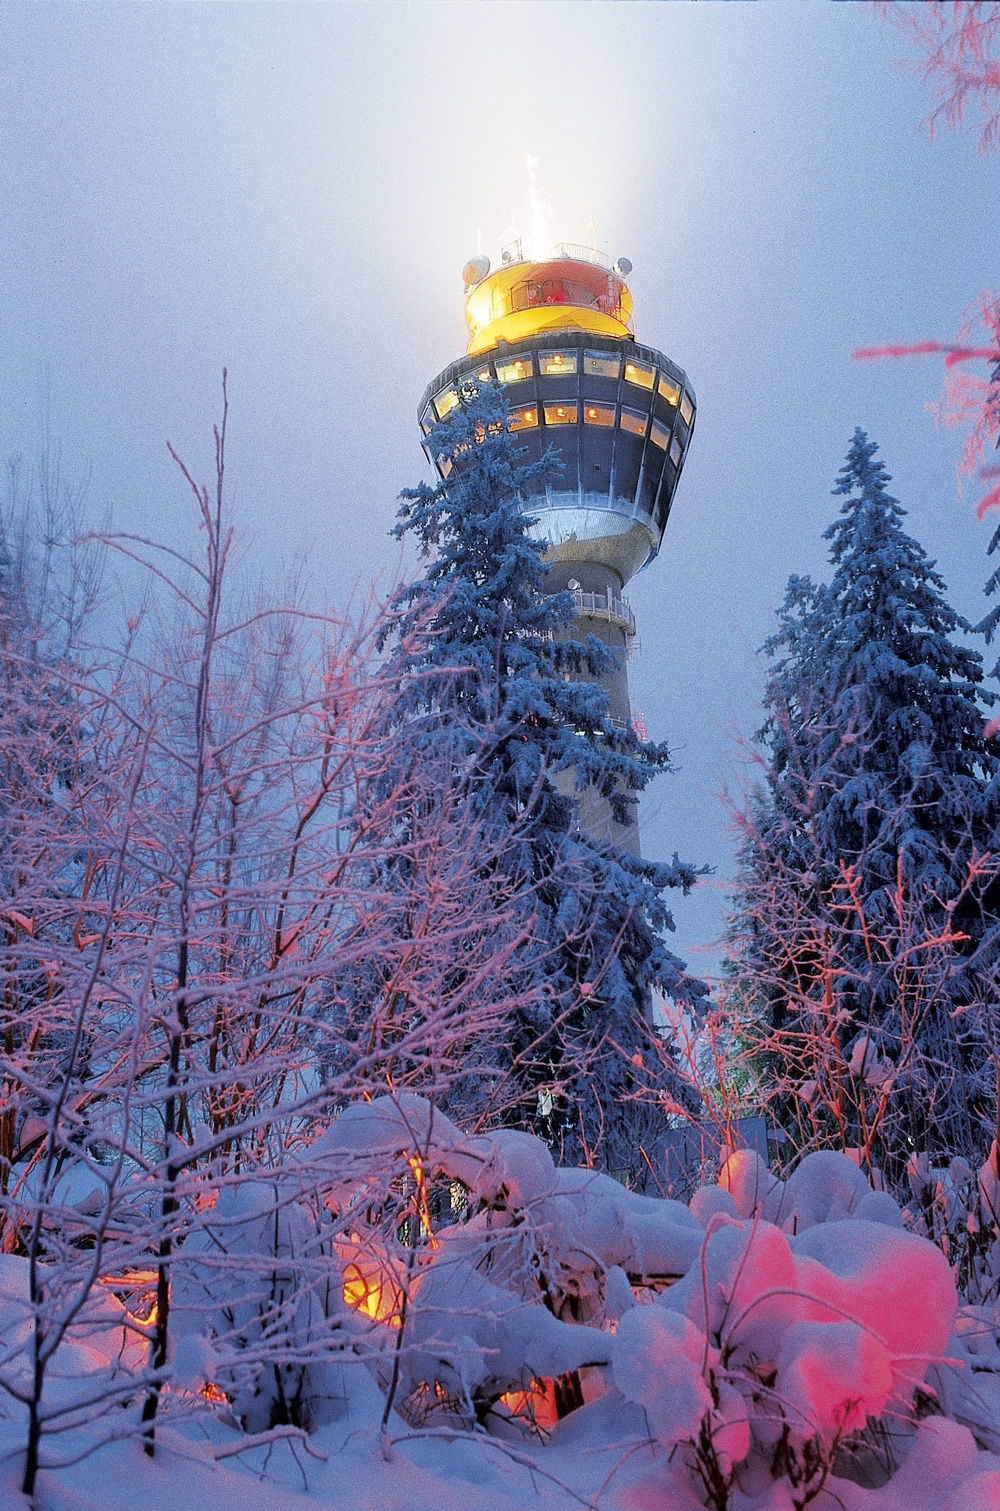 The Kuopio Puijo Tower in eastern Finland is the first of its kind in the Nordic regions. This observation tower has that staple of all such towers: a revolving restaurant.Image©Visit Finland.